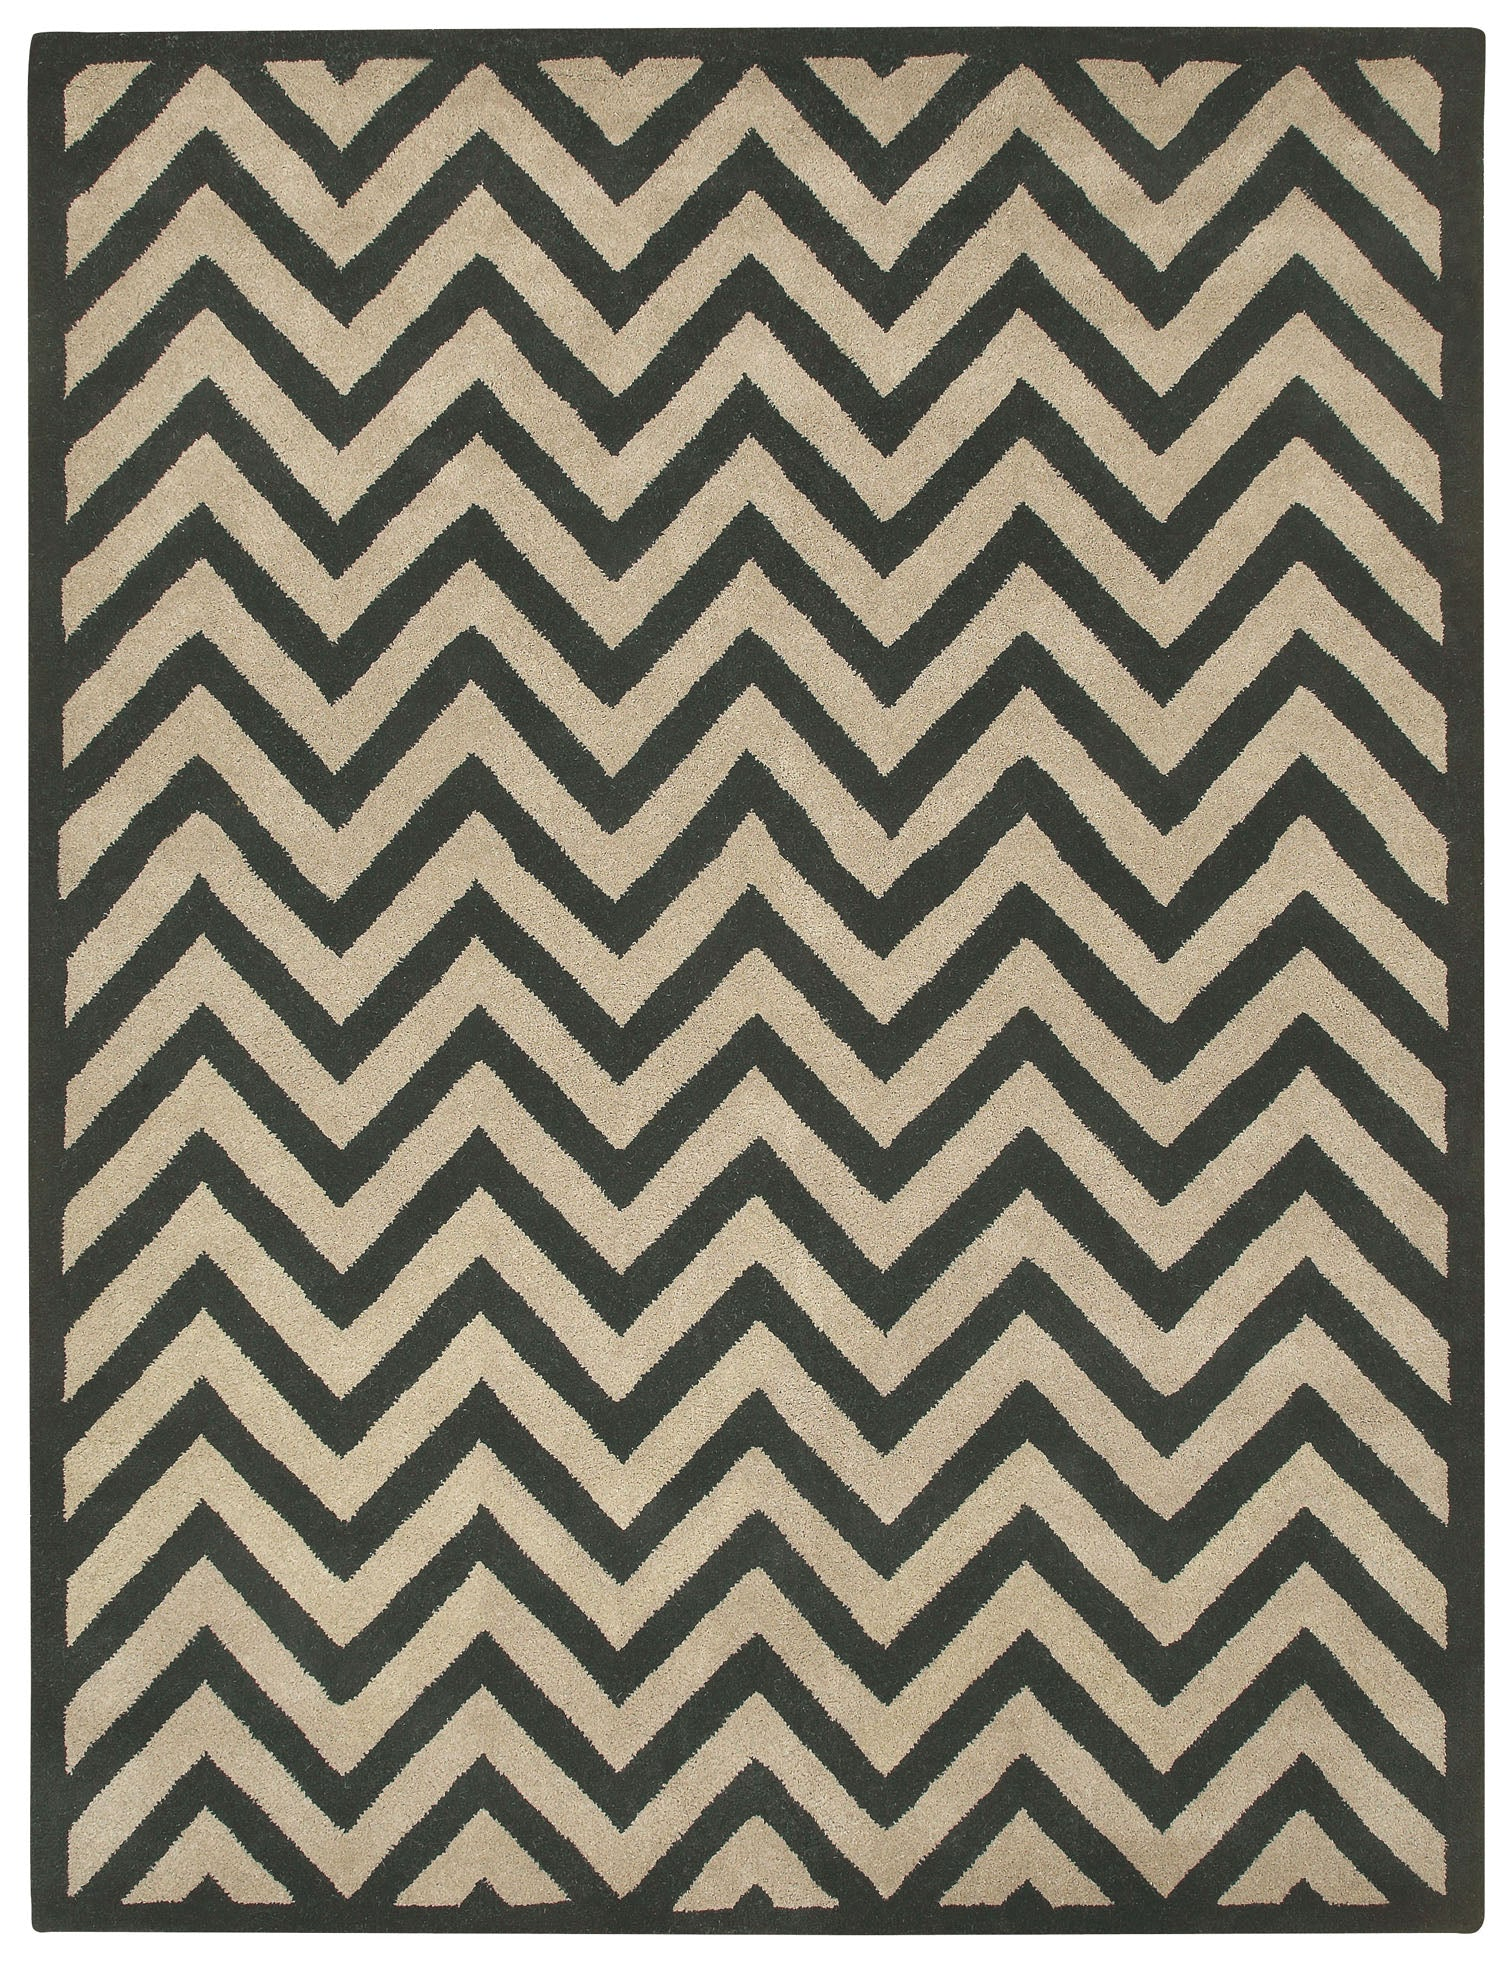 Capel Charisma Chevron 3266 Ebony 360 Area Rug main image